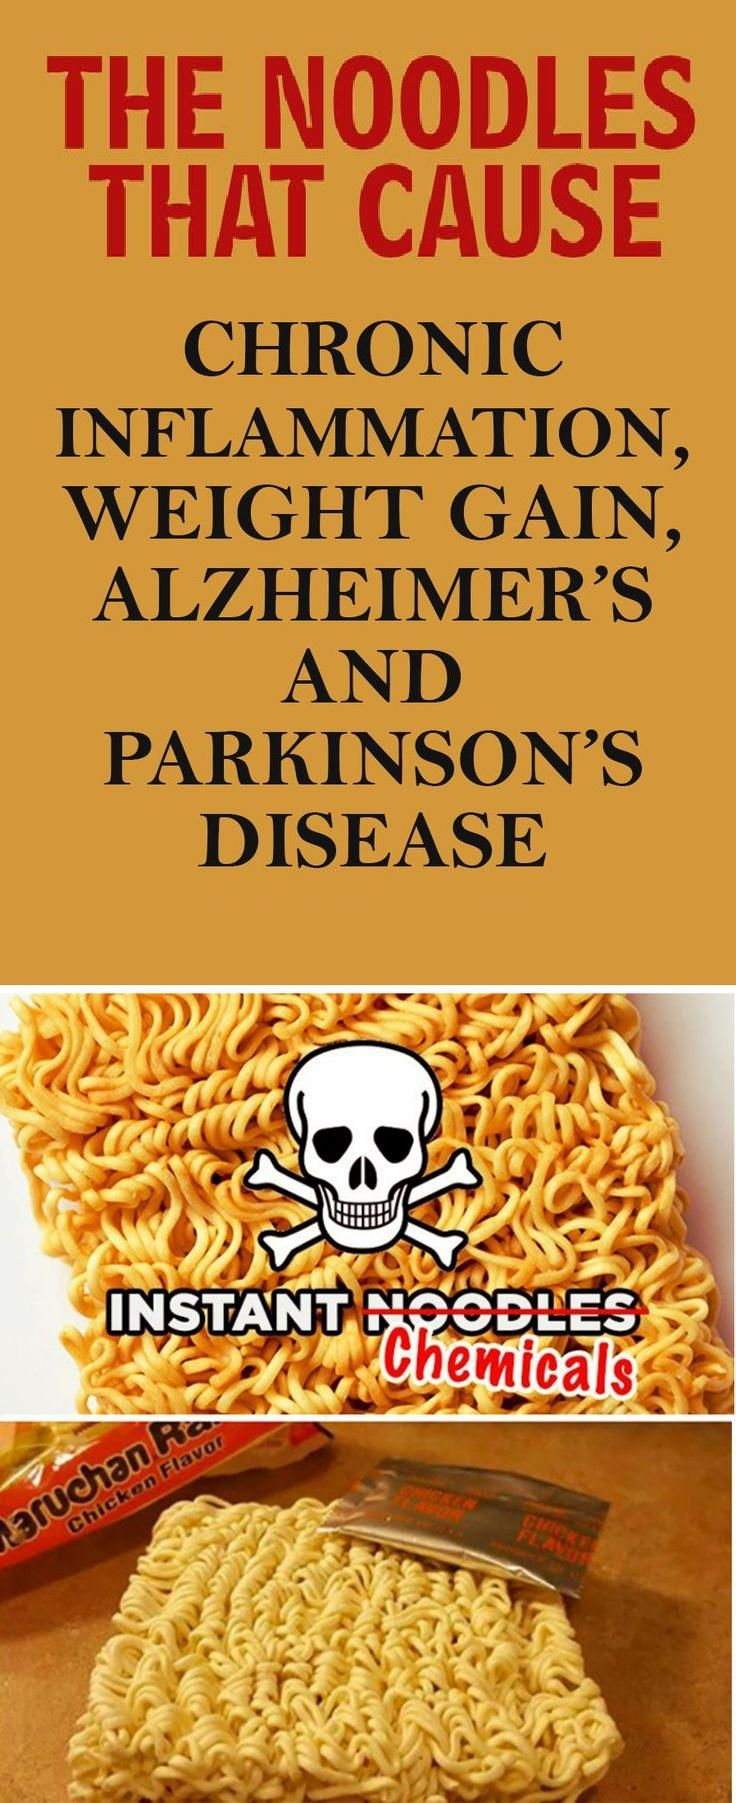 The Noodles That Can Potentially Trigger Alzheimer's, Chronic Inflammation, Parkinson's Disease And Weight Gain